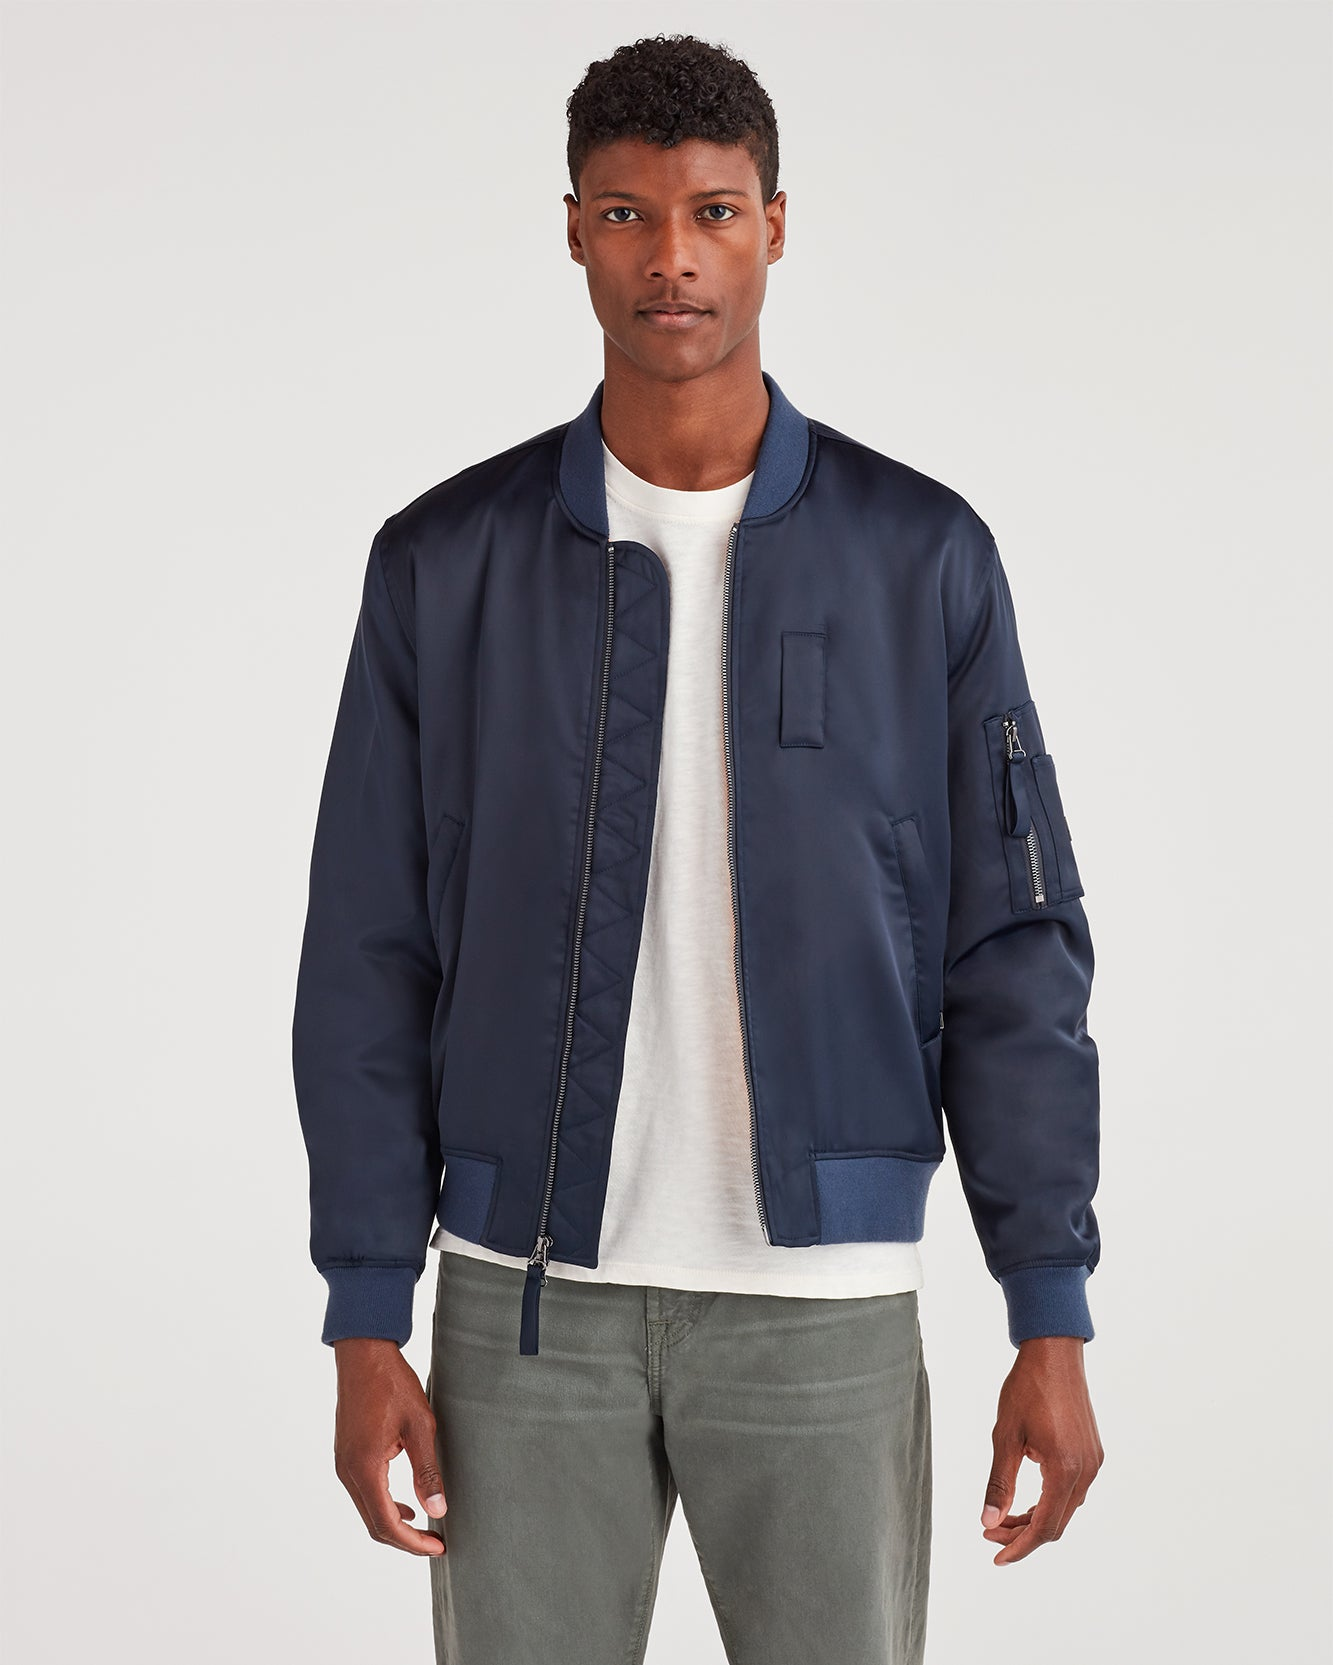 Image of Class-A Bomber Jacket in Midnight Navy